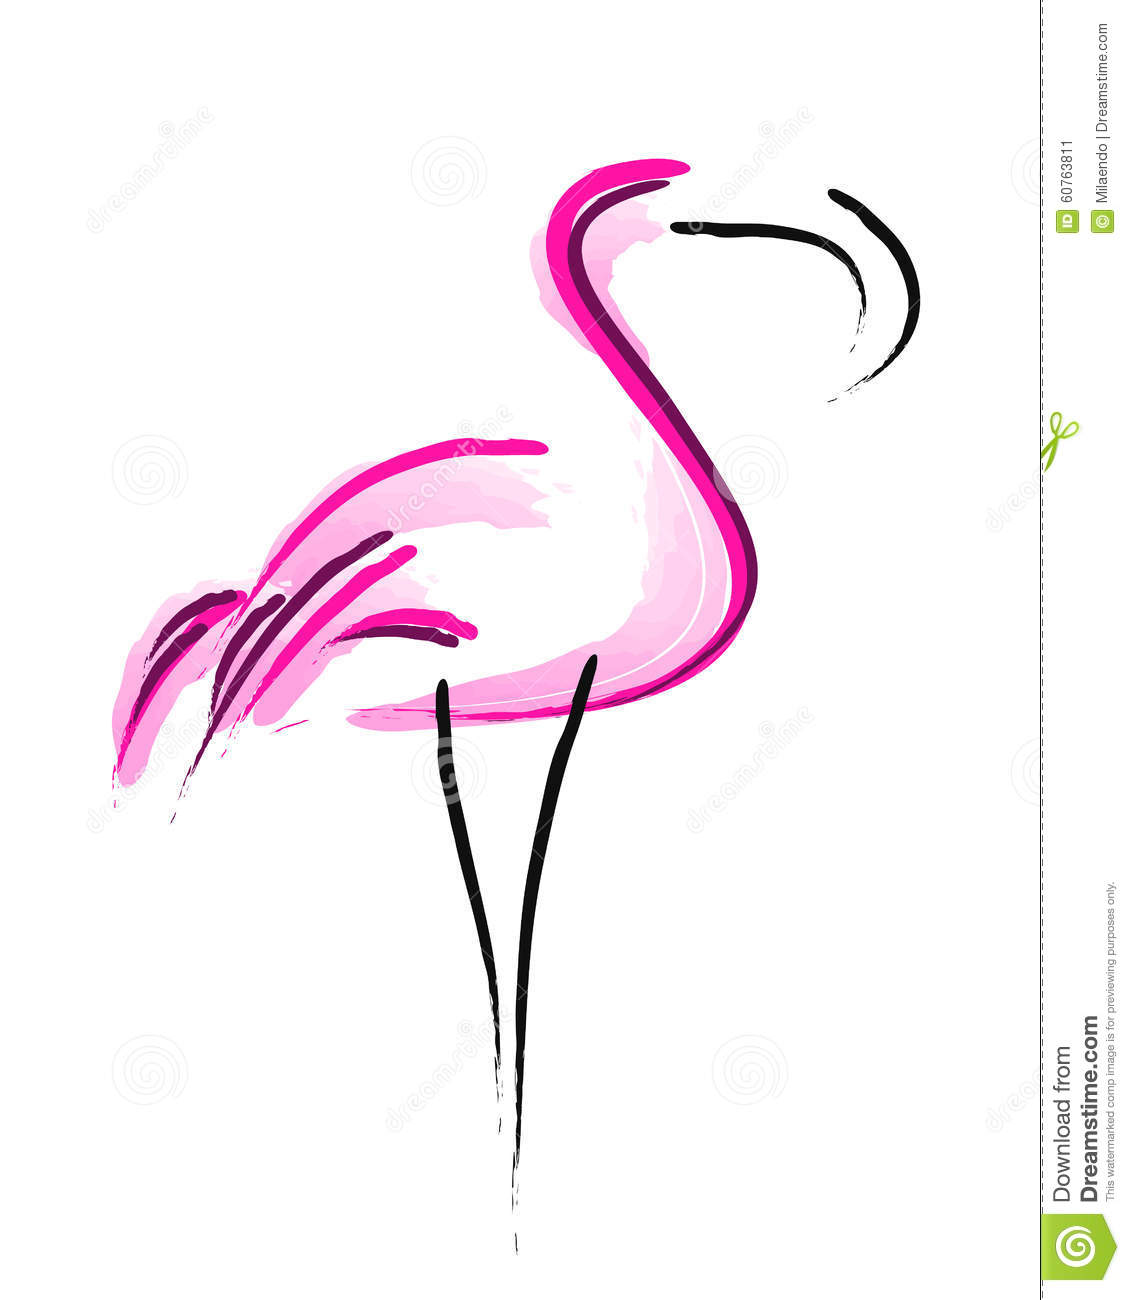 Dinosaur Footprint Drawing as well Stock Illustration Flamingos Simple Symbol Image Bird Lines Image Pink Flamingo Vector White Background Image60763811 as well Popee The Performer Episodes 1 4 further Personal Protective Equipment besides How To Draw Iron Man With Easy Step By Step Drawing Tutorial. on cartoon foot